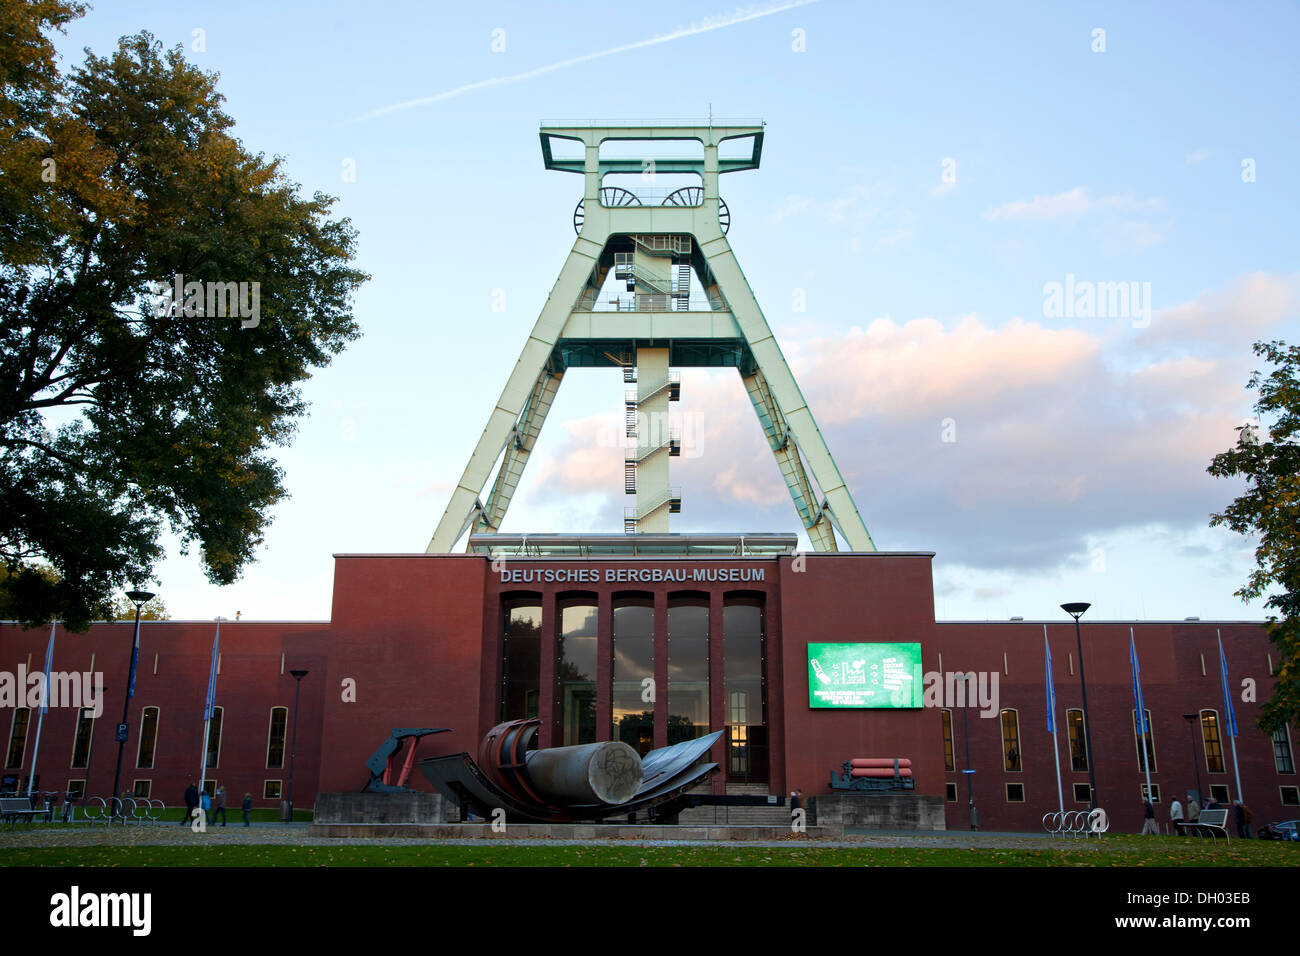 The German Mining Museum, 'Deutsches Bergbau-Museum' with headframe, Bochum, North Rhine-Westphalia - Stock Image